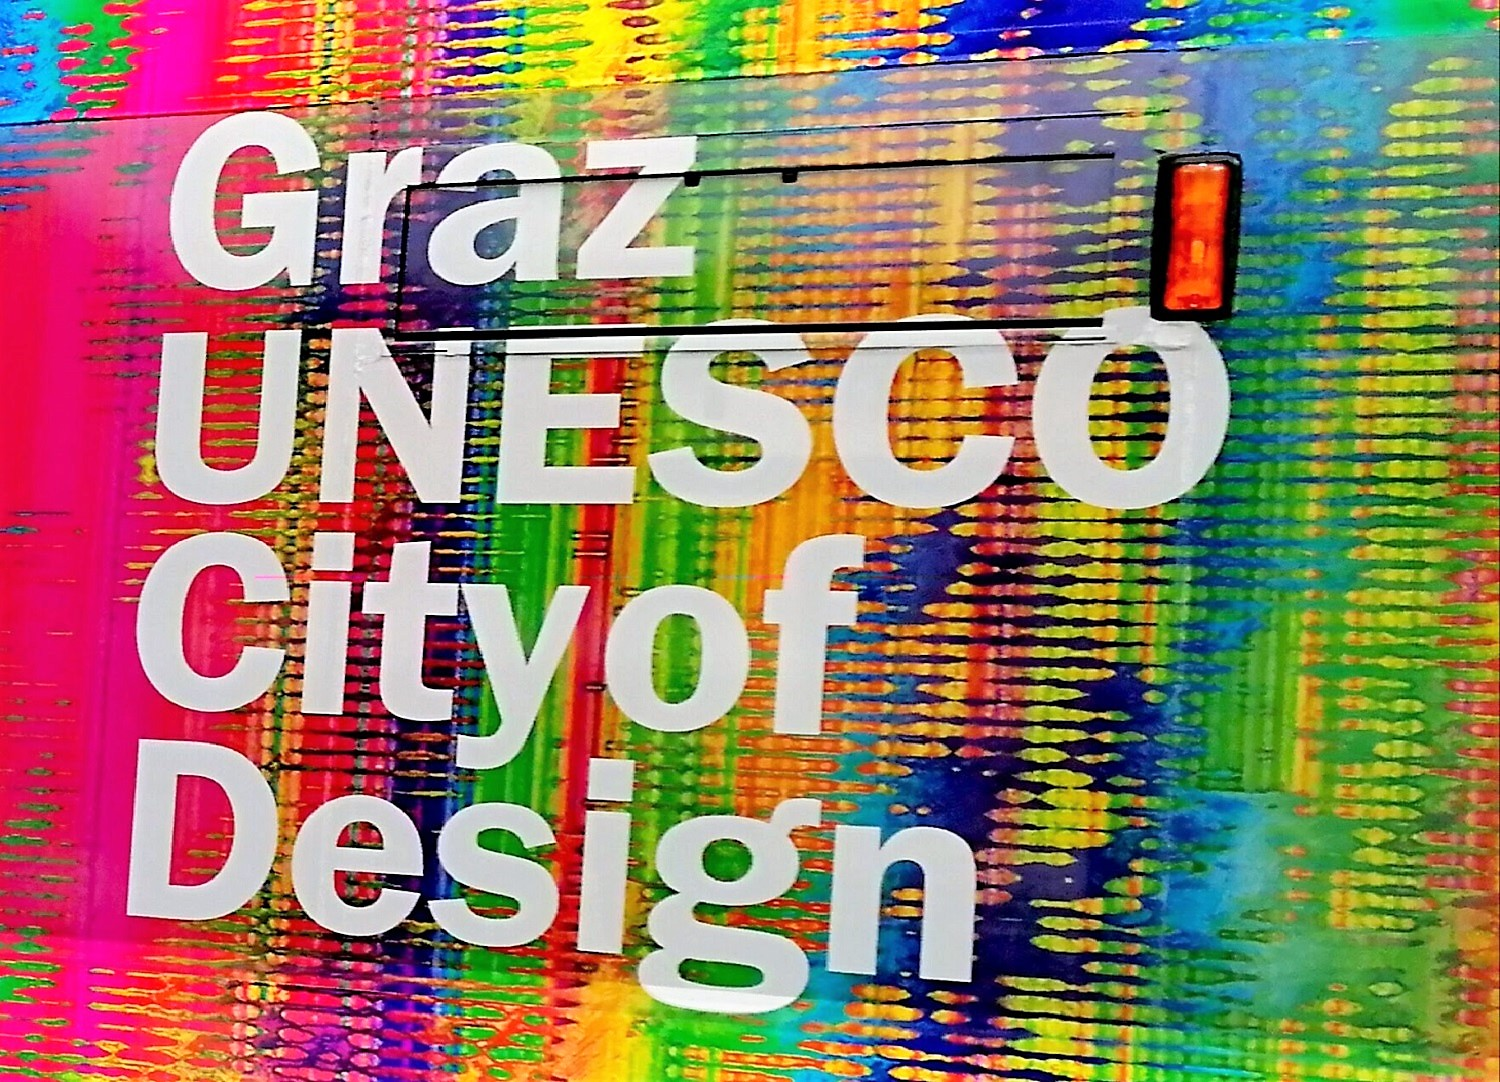 Graz UNESCO City of Design Logo © Stadt Graz